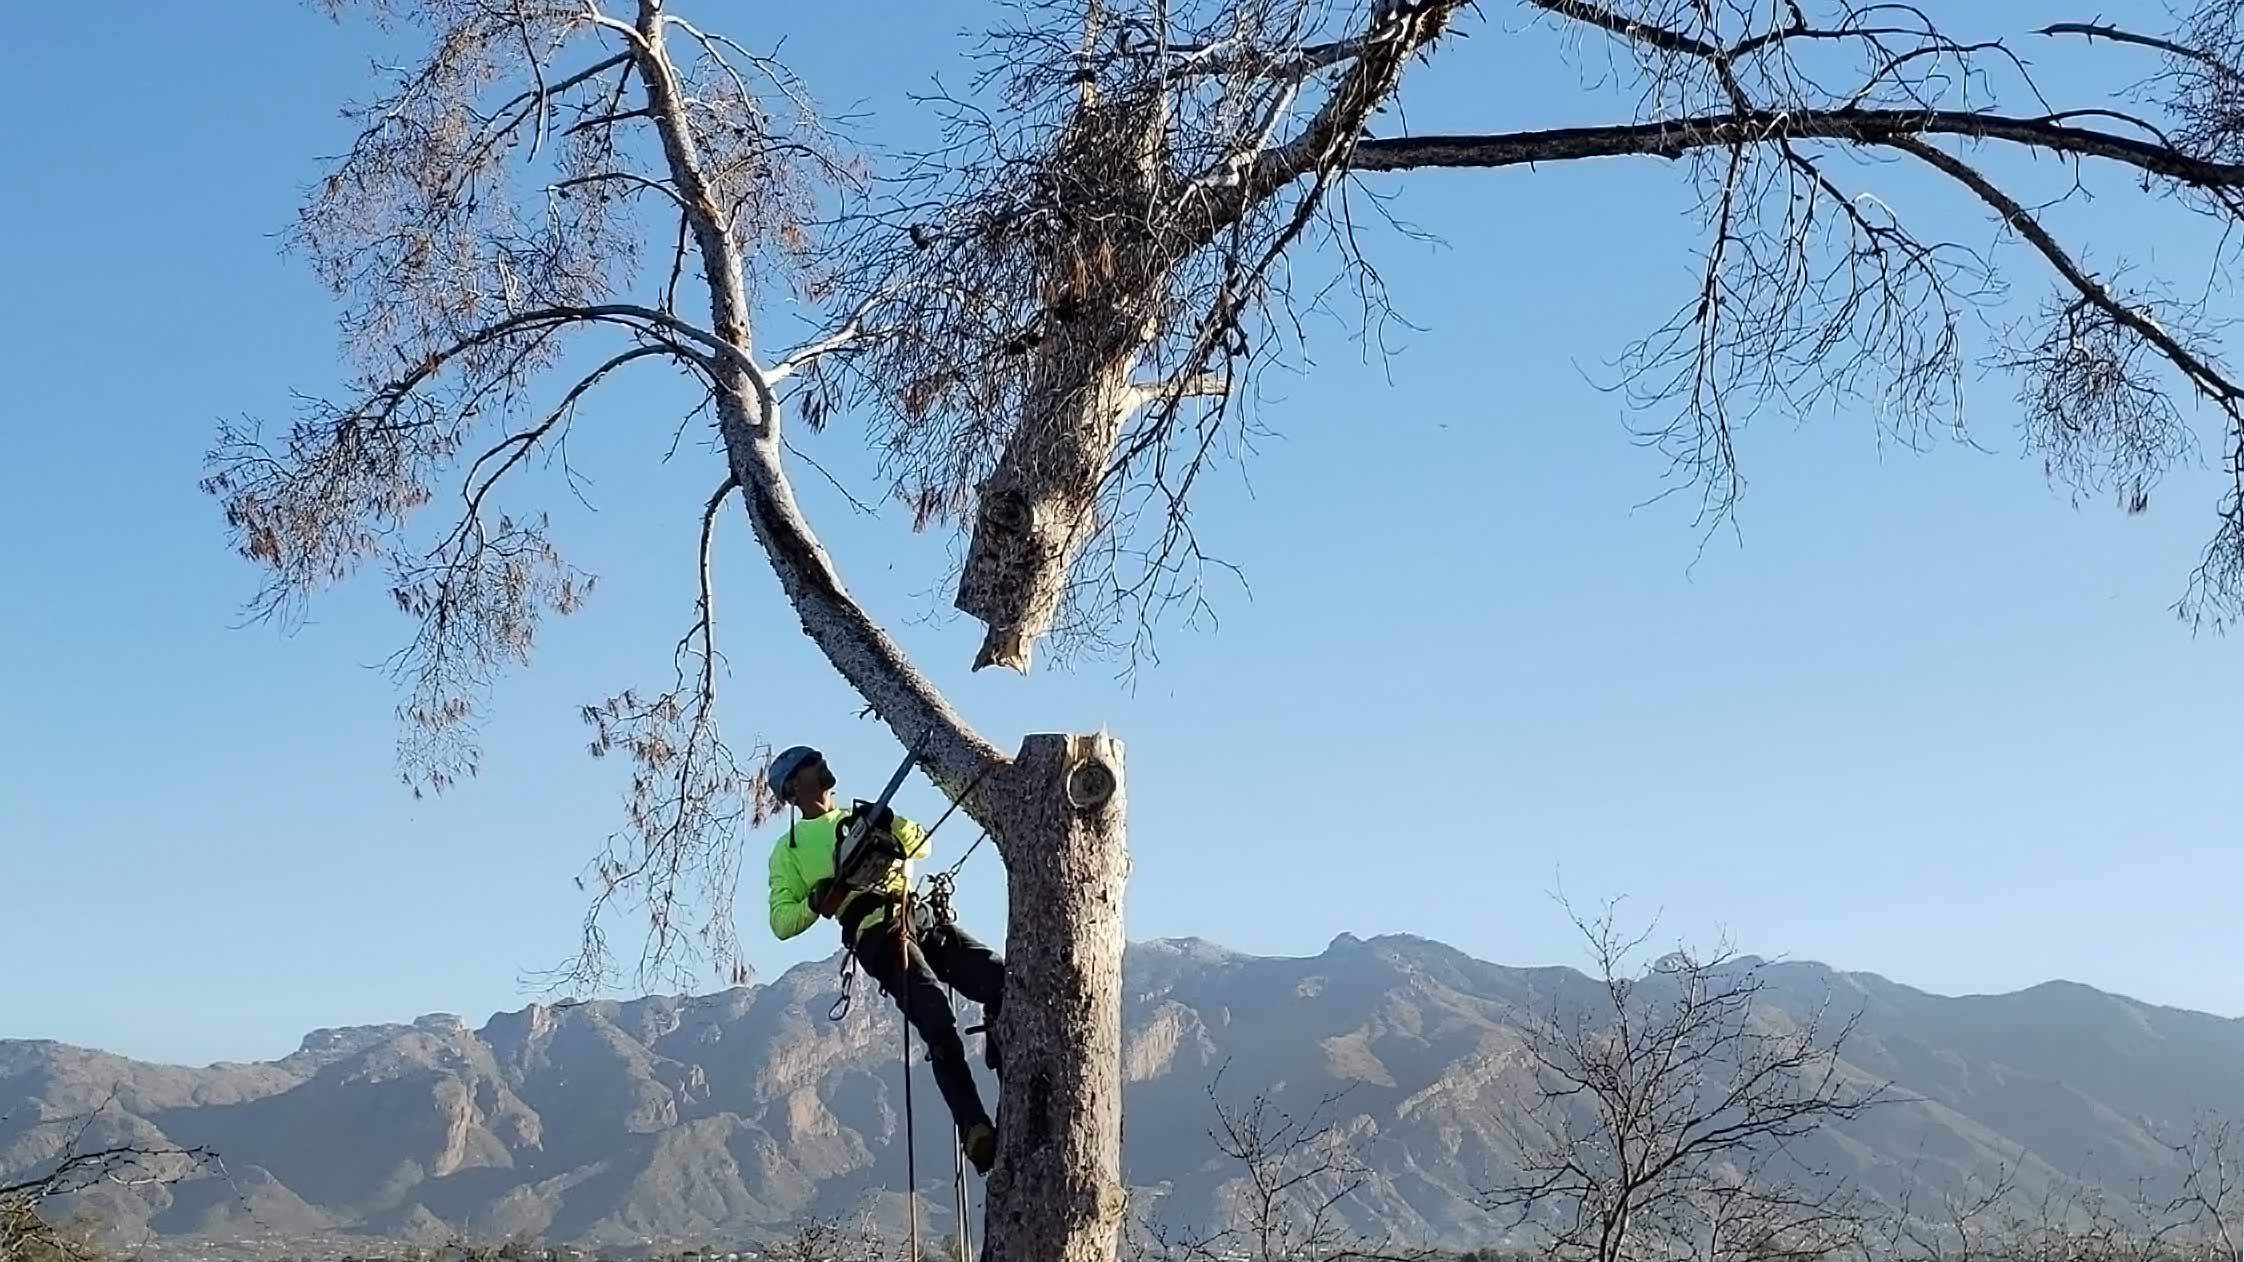 Reviews for Branching Out Tree Service